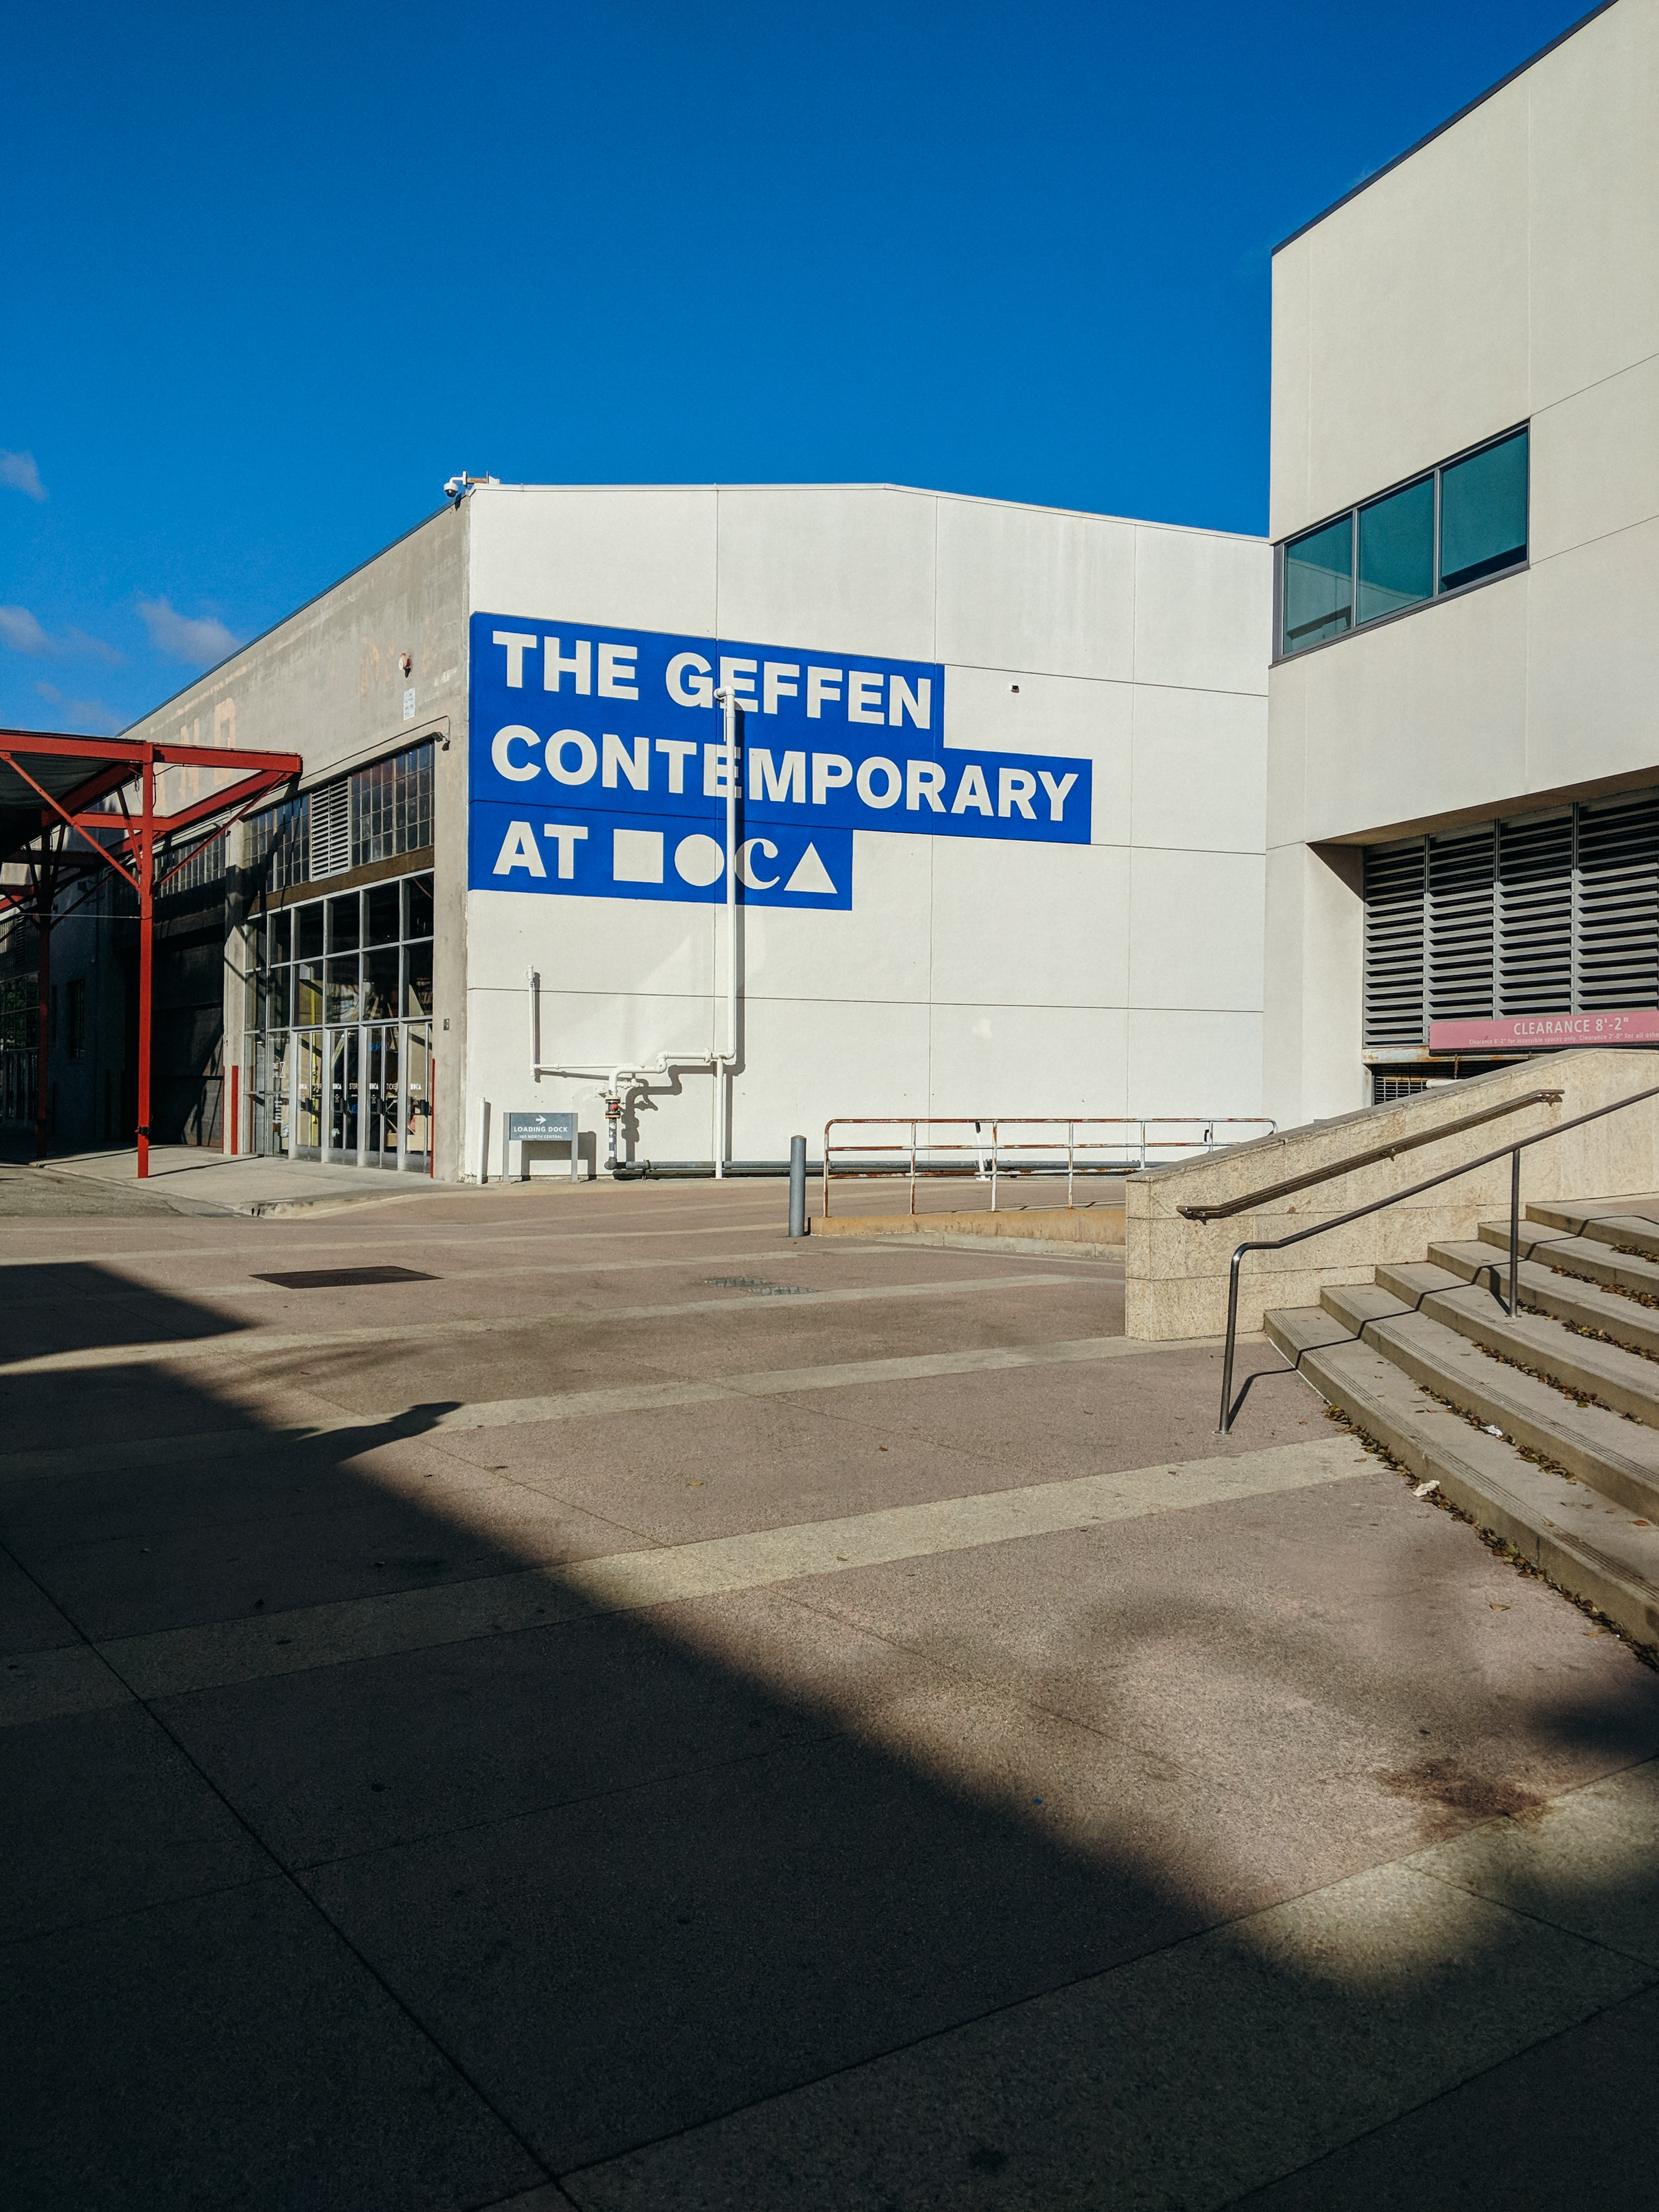 The Geffen Contemporary building under blue sky during daytime